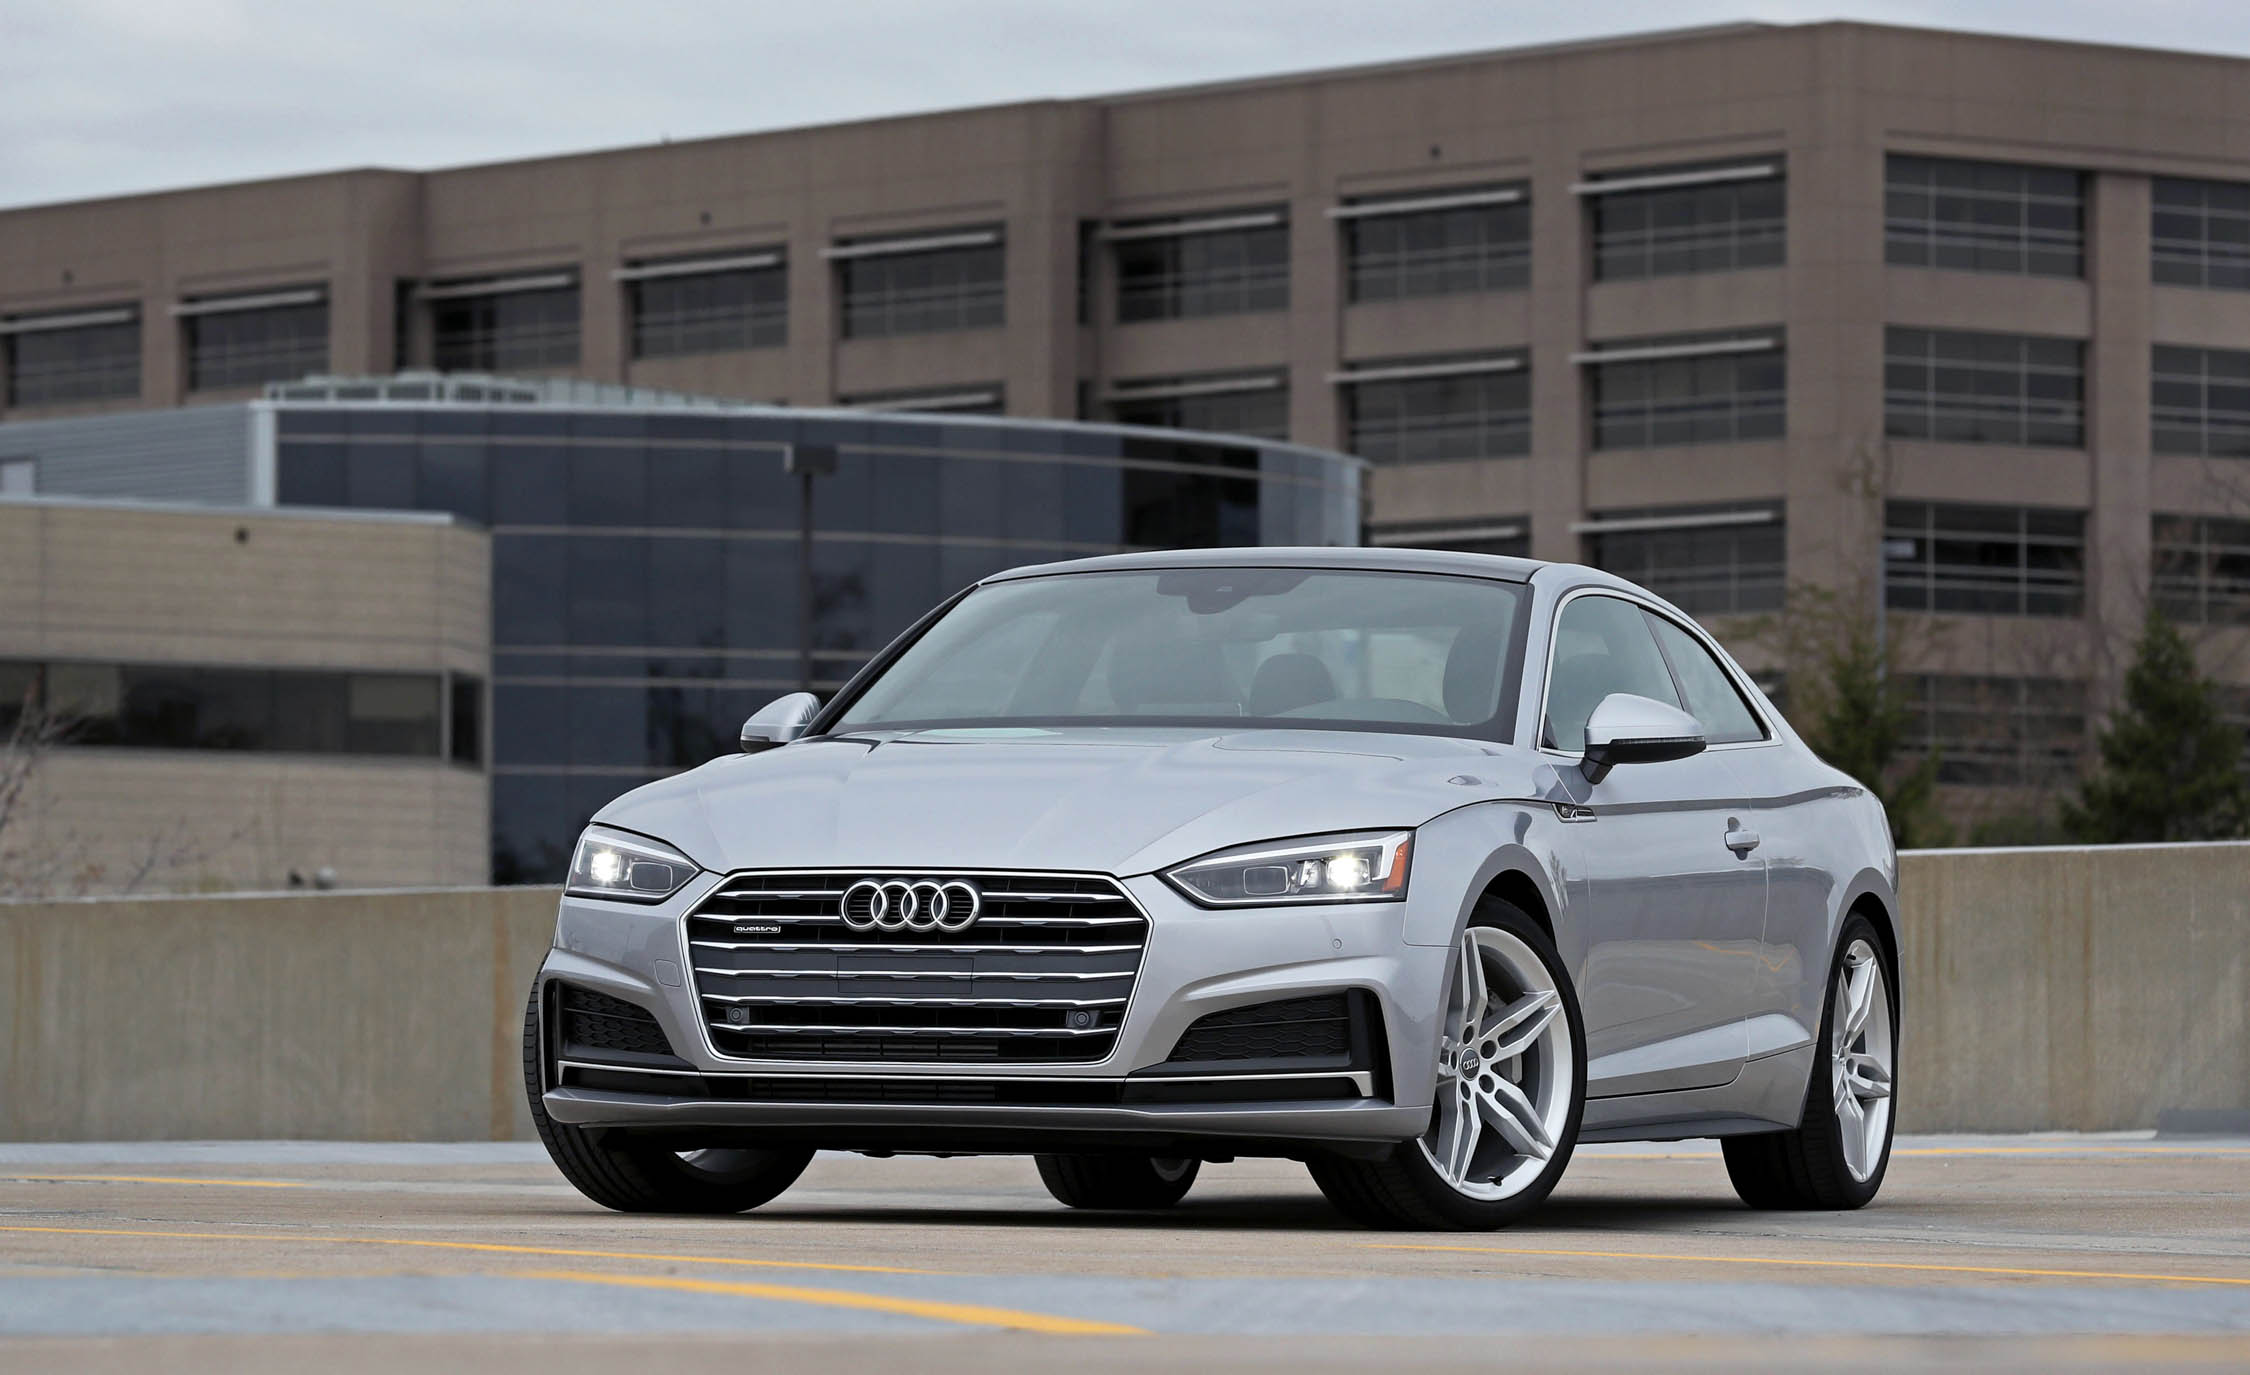 2018 Audi A5 Coupe Exterior Front (Photo 2 of 50)